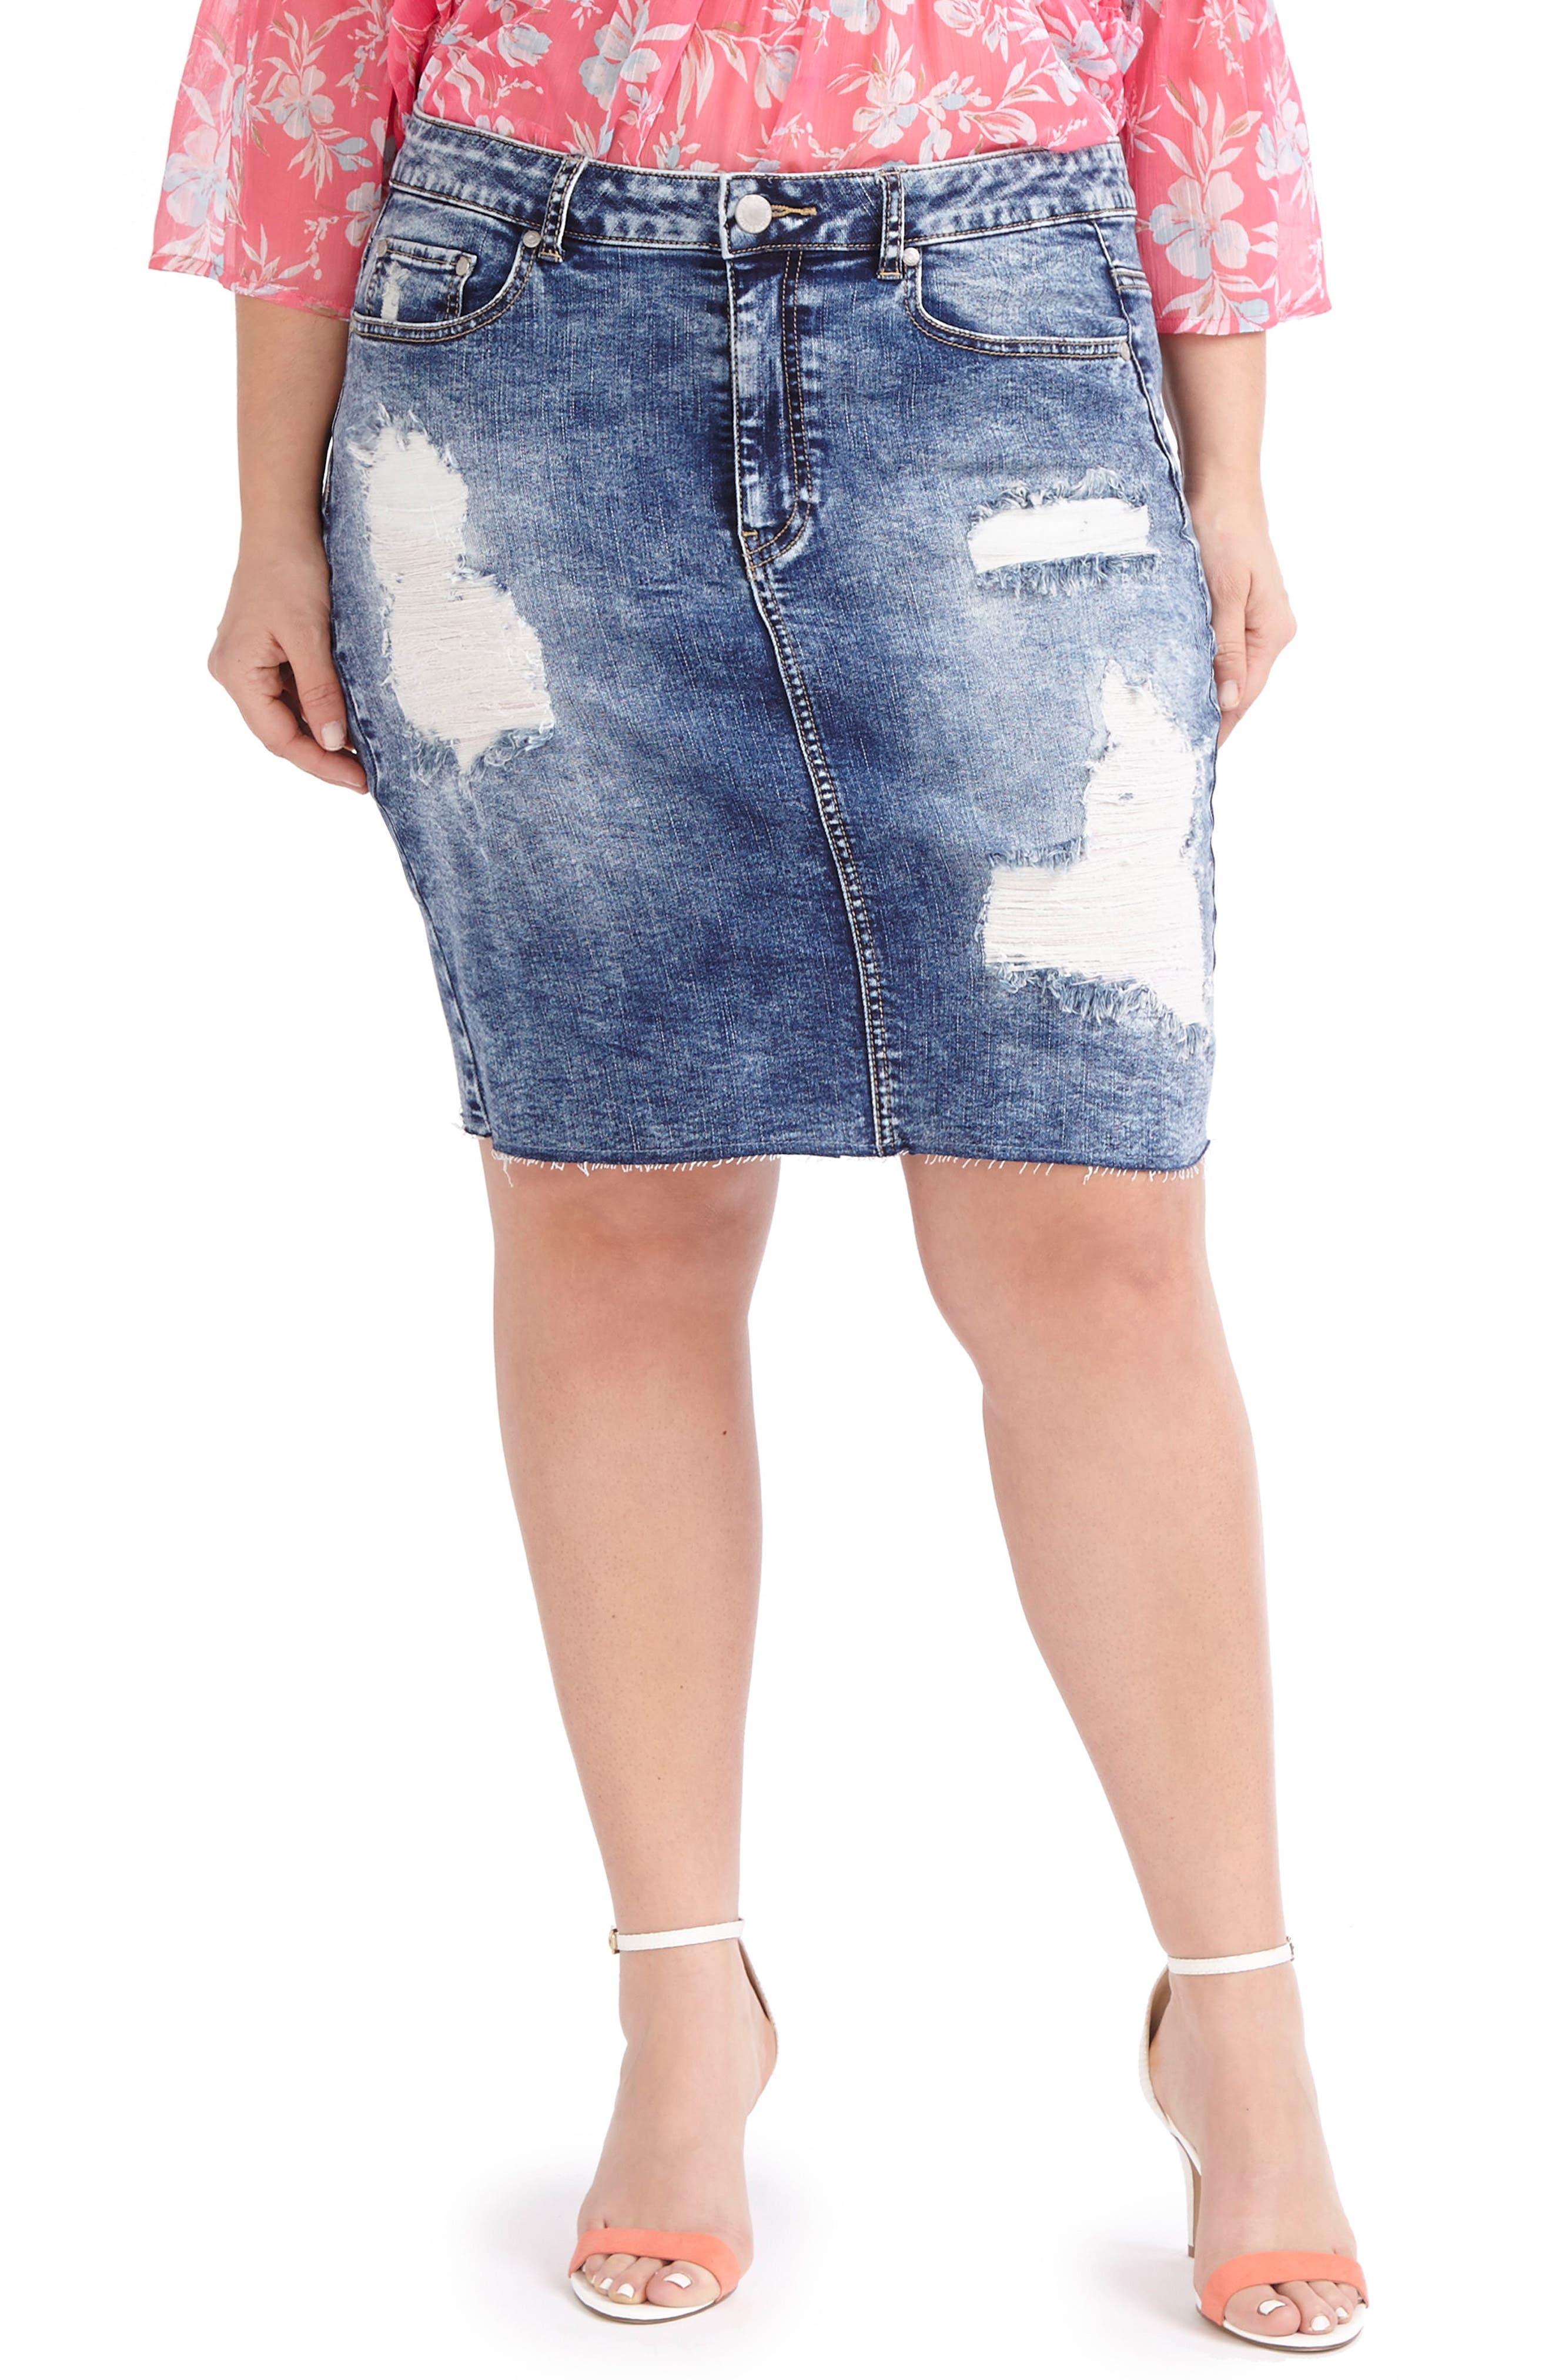 ADDITION ELLE LOVE AND LEGEND Ripped Denim Skirt (Plus Size)